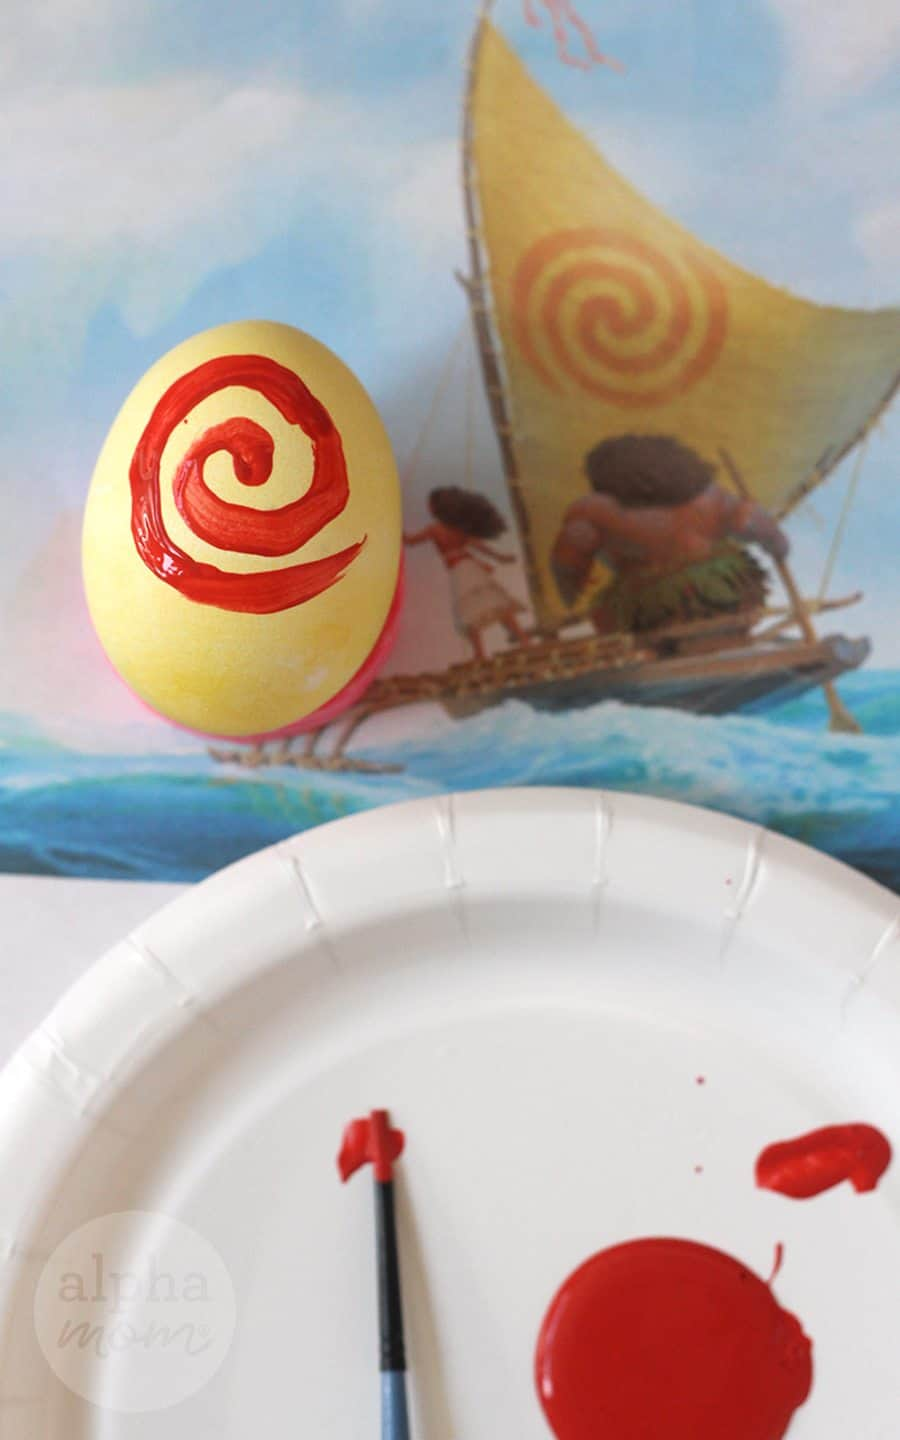 Moana's Sail Easter egg